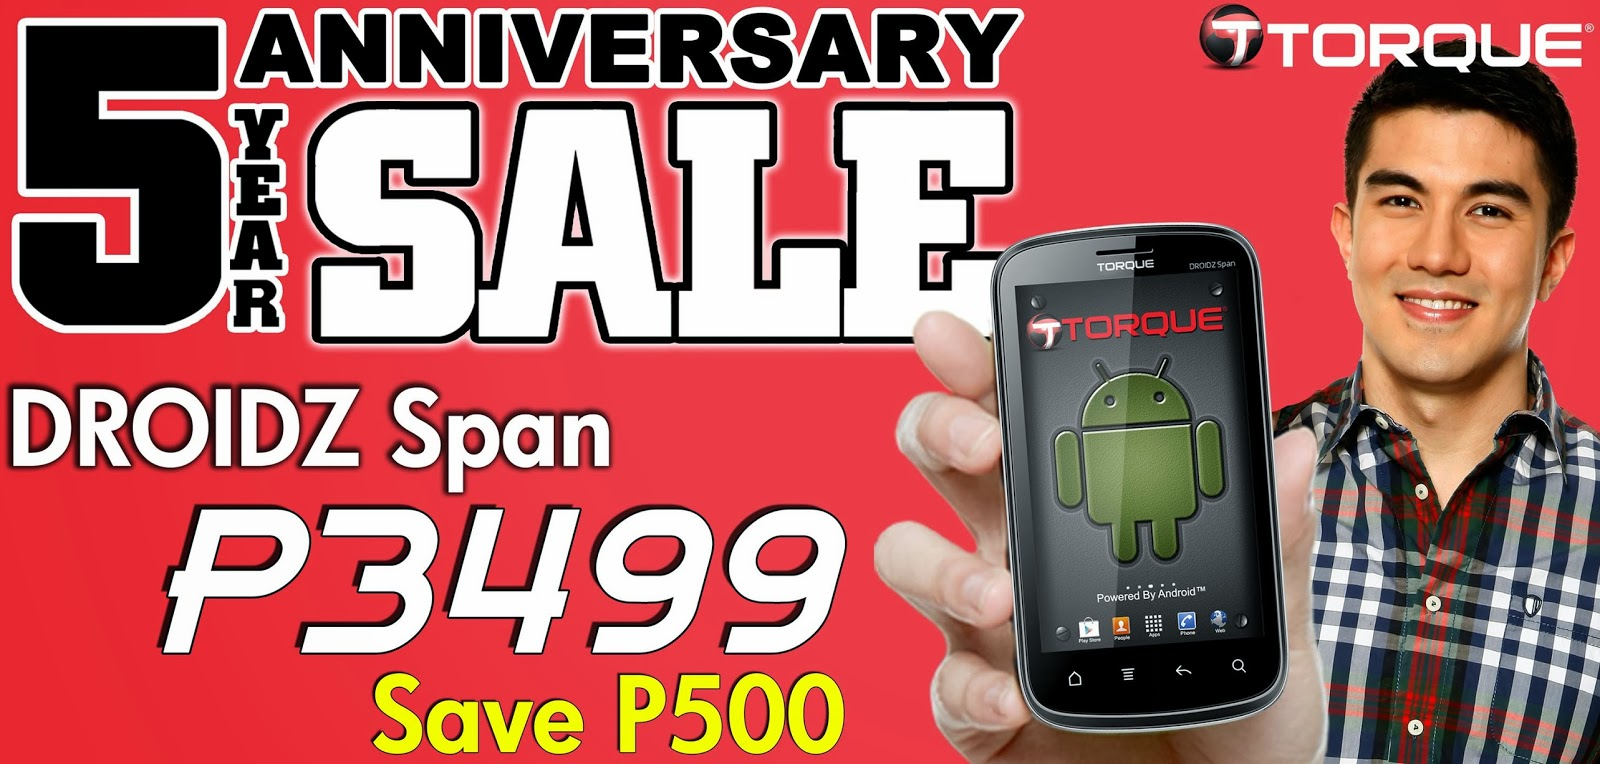 Torque Droidz Span 5-inch Android phone on Anniversary Sale Price